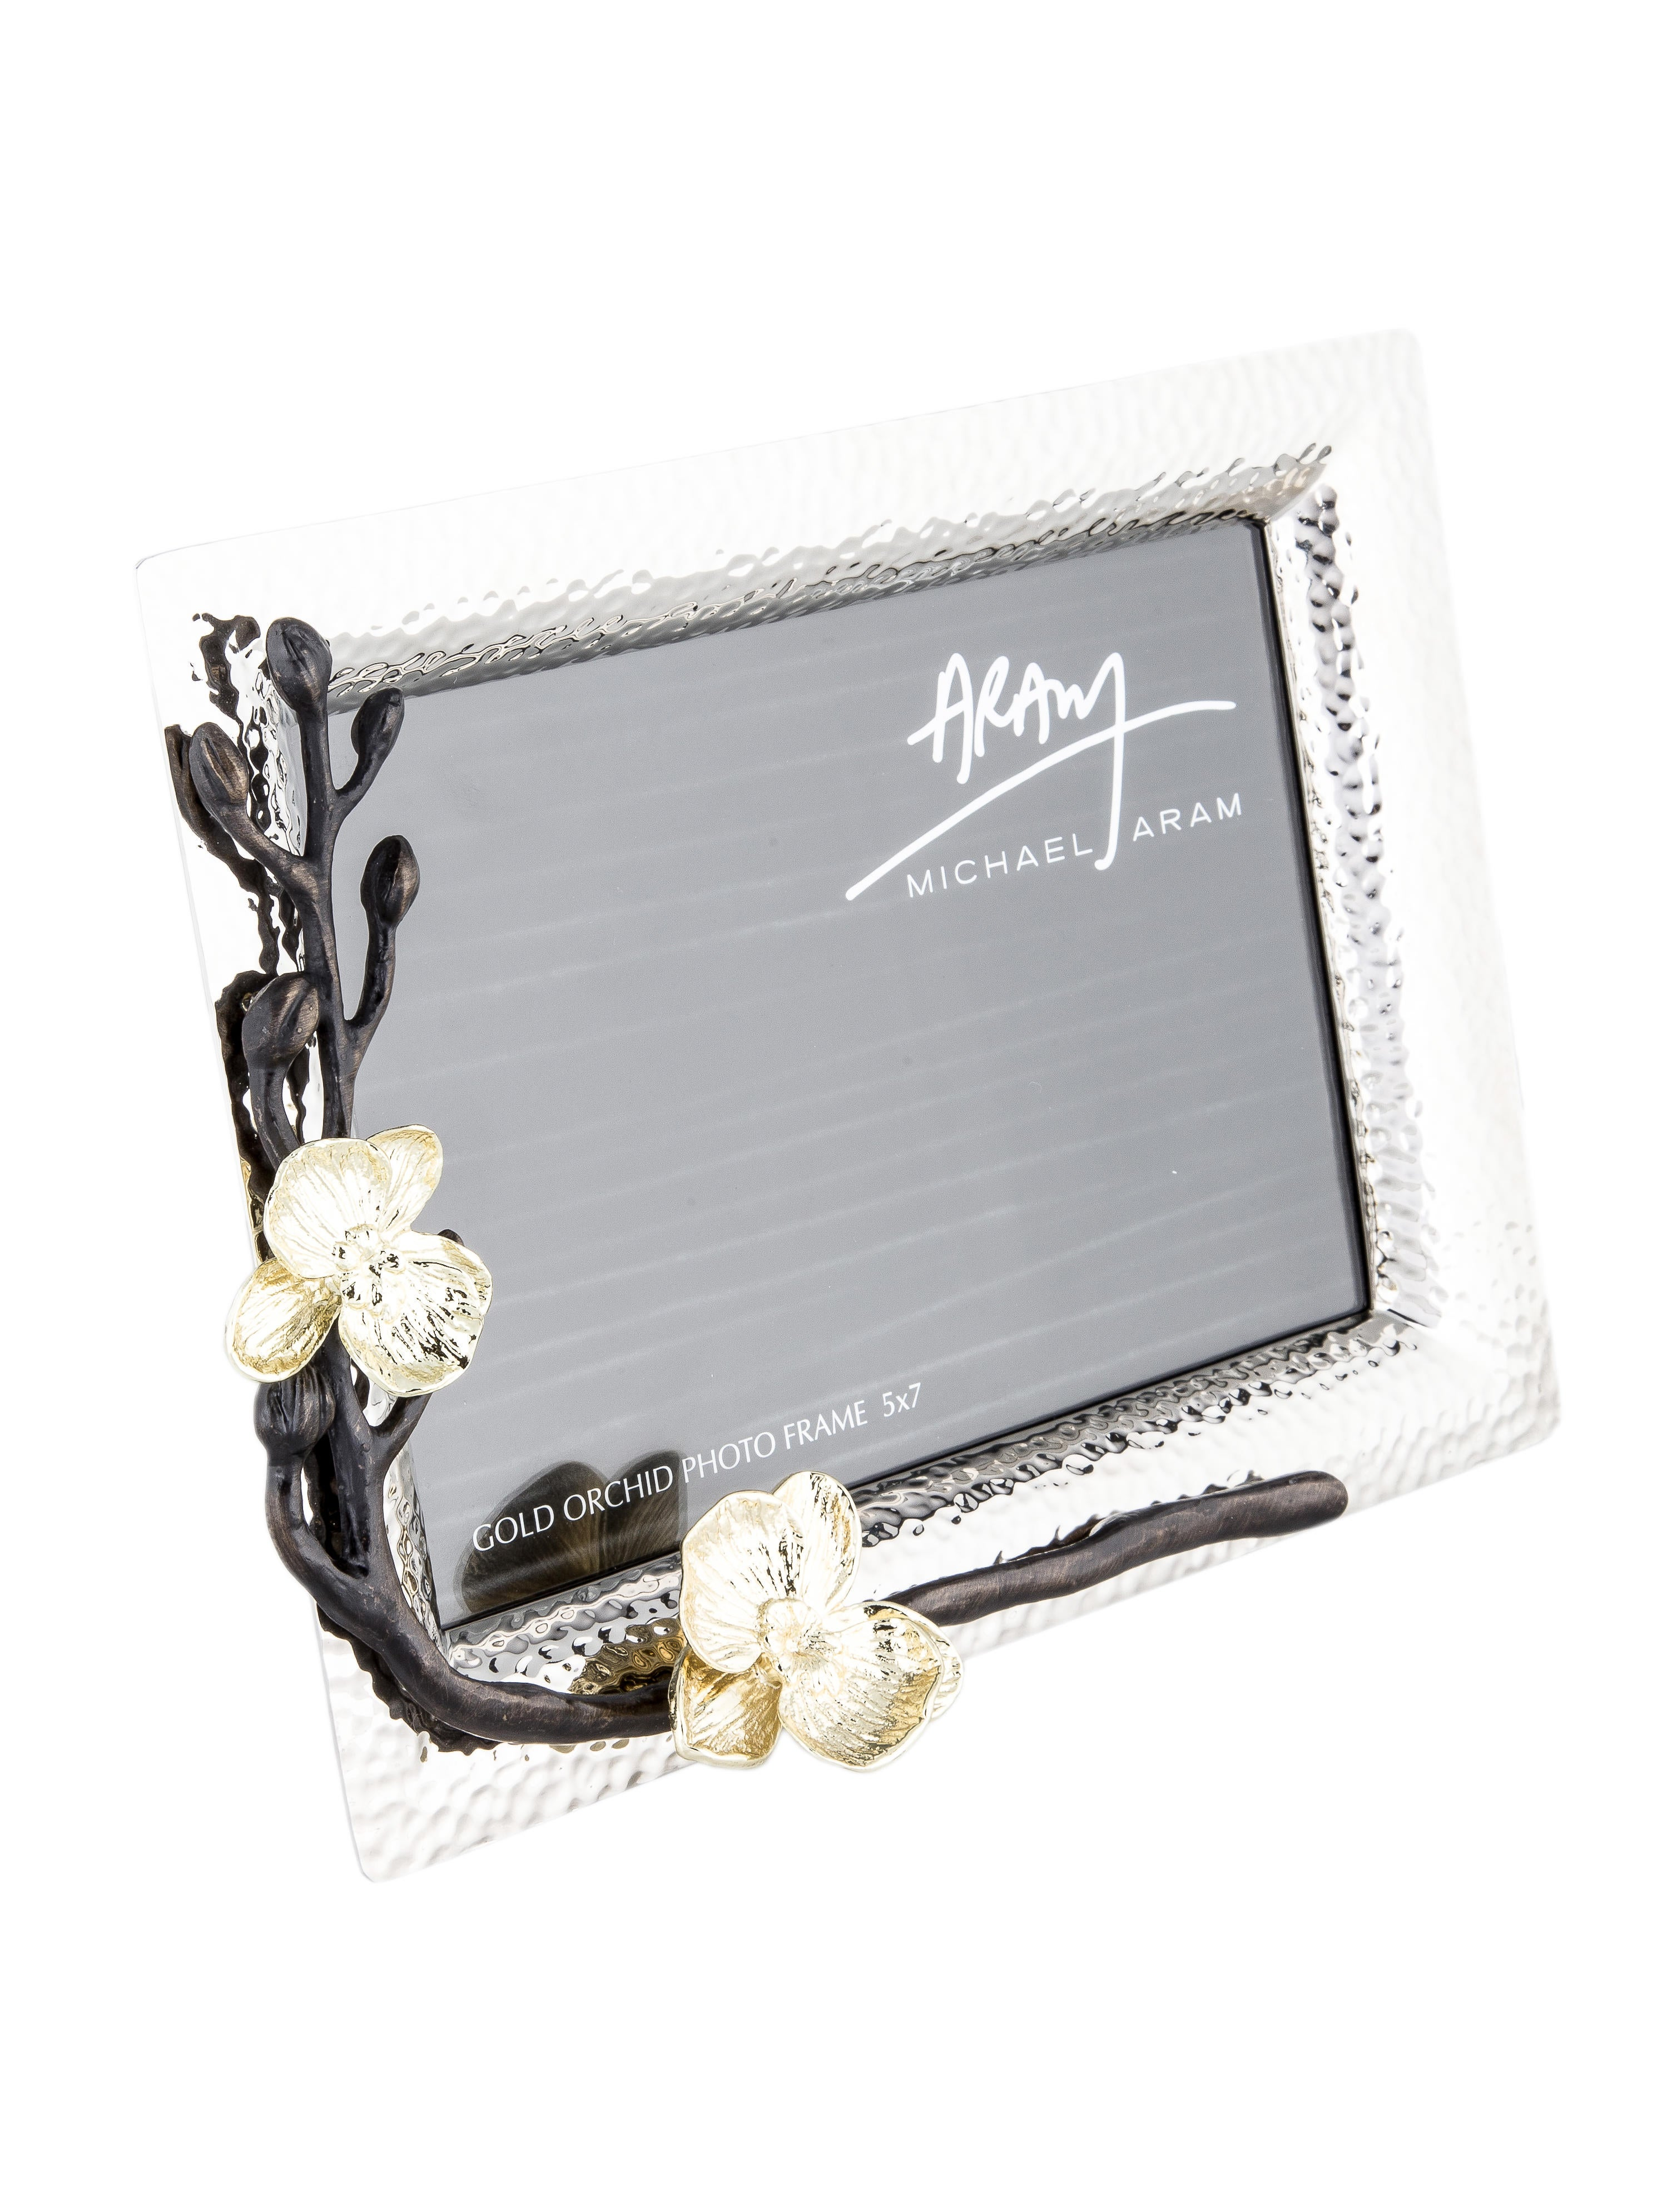 Michael Aram Gold Orchid Picture Frame - Decor And Accessories ...